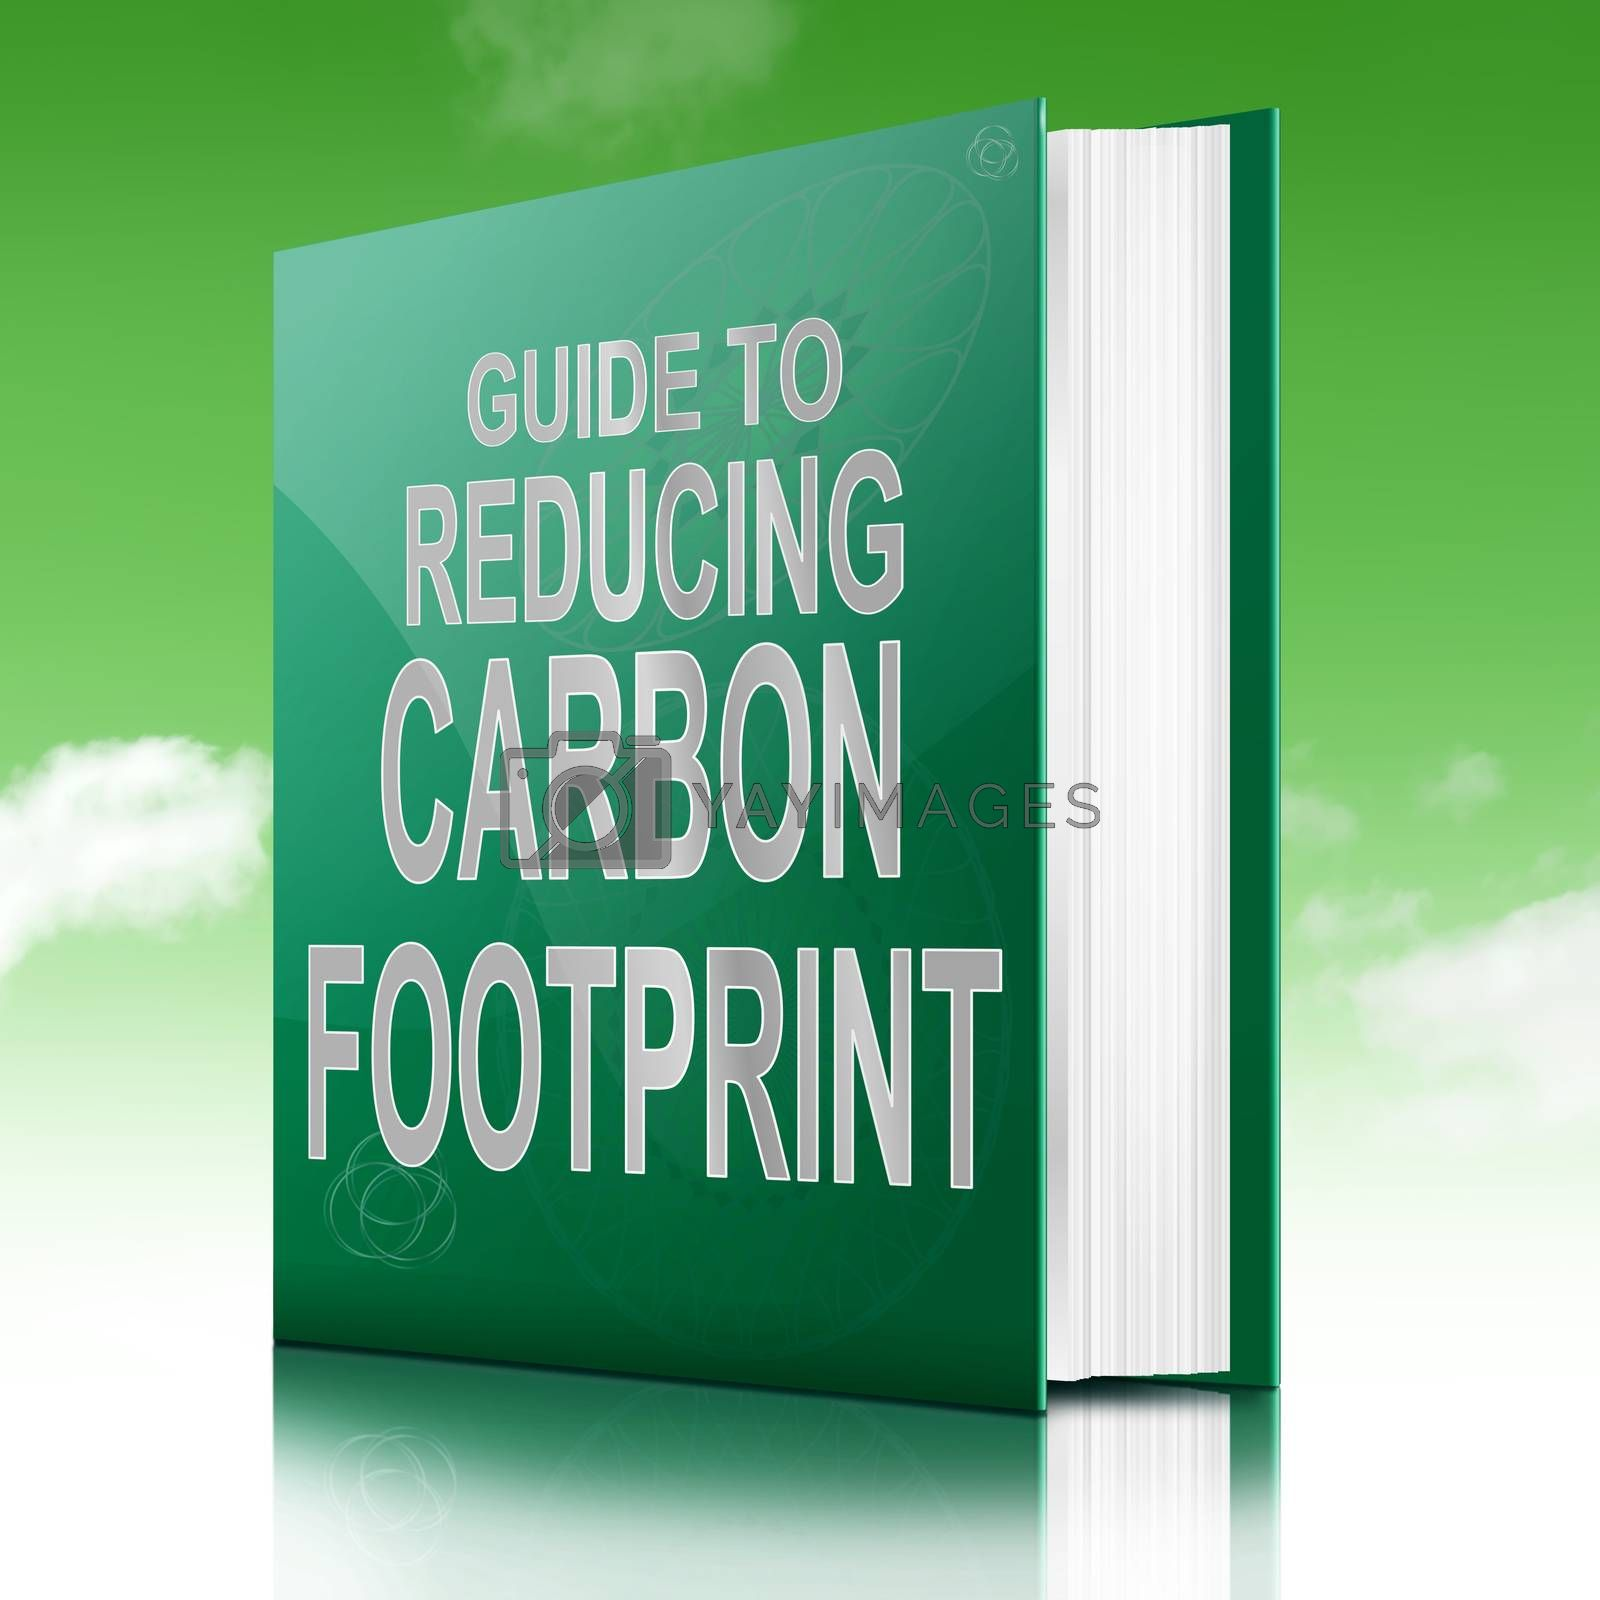 Illustration depicting a book with a carbon footprint concept title. Sky background.